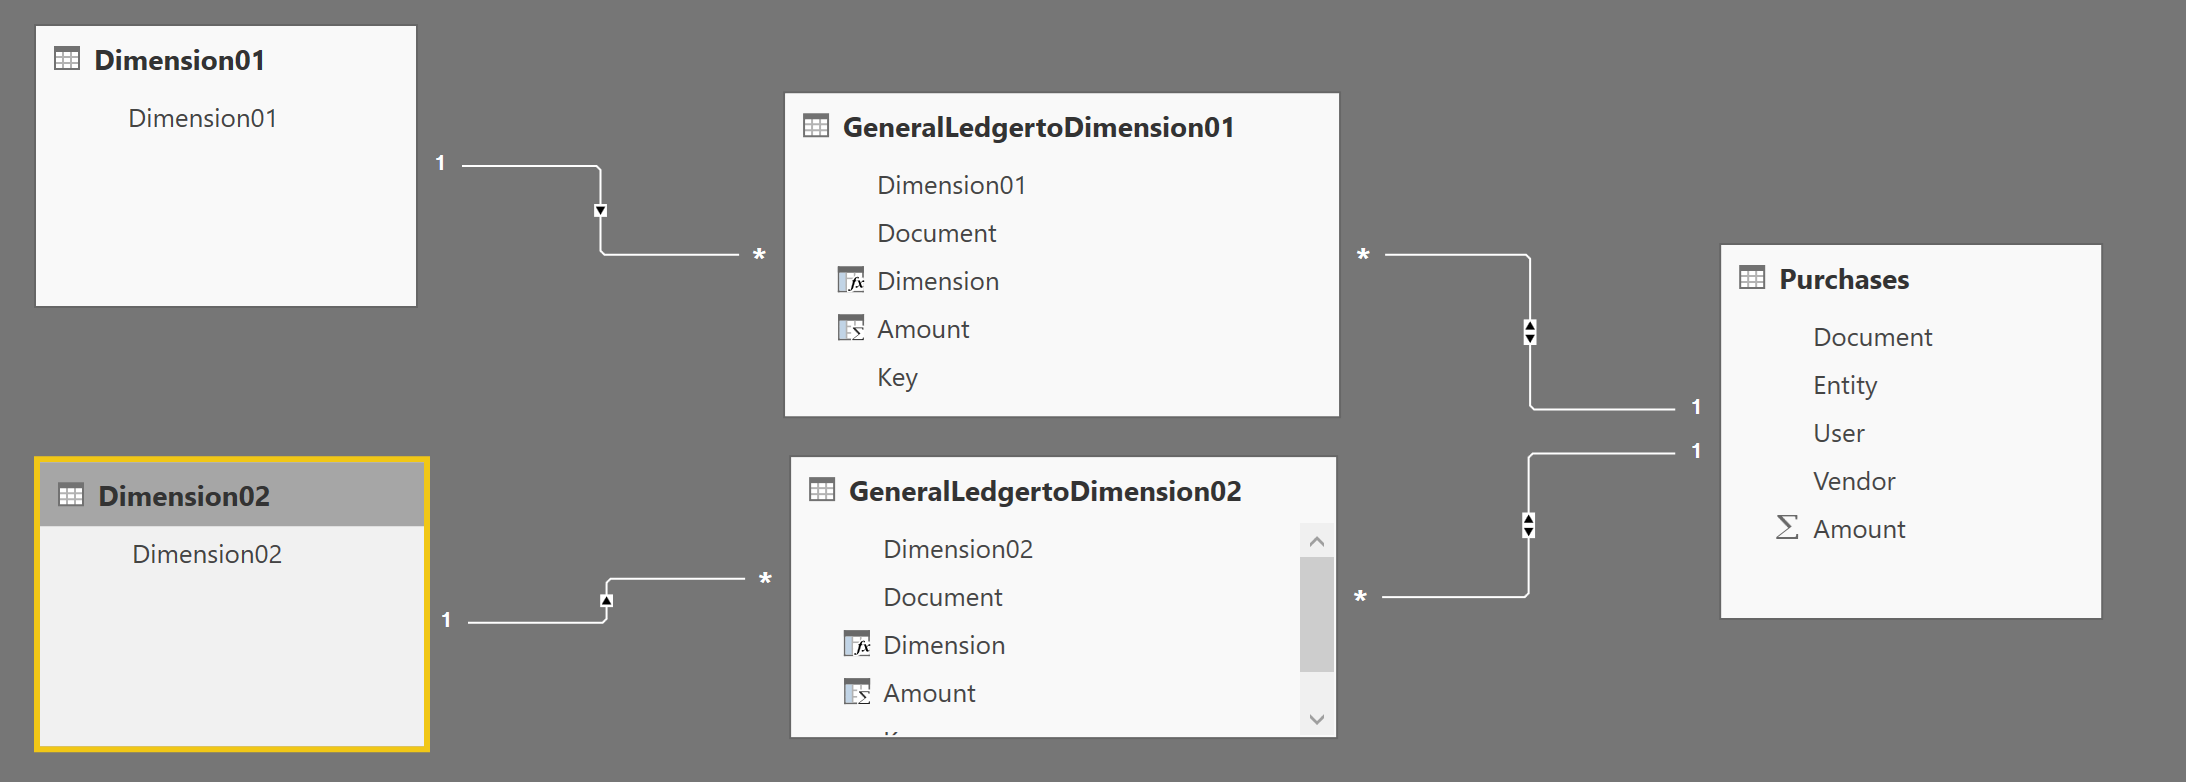 Dynamic dimensions in Power BI | LeanX